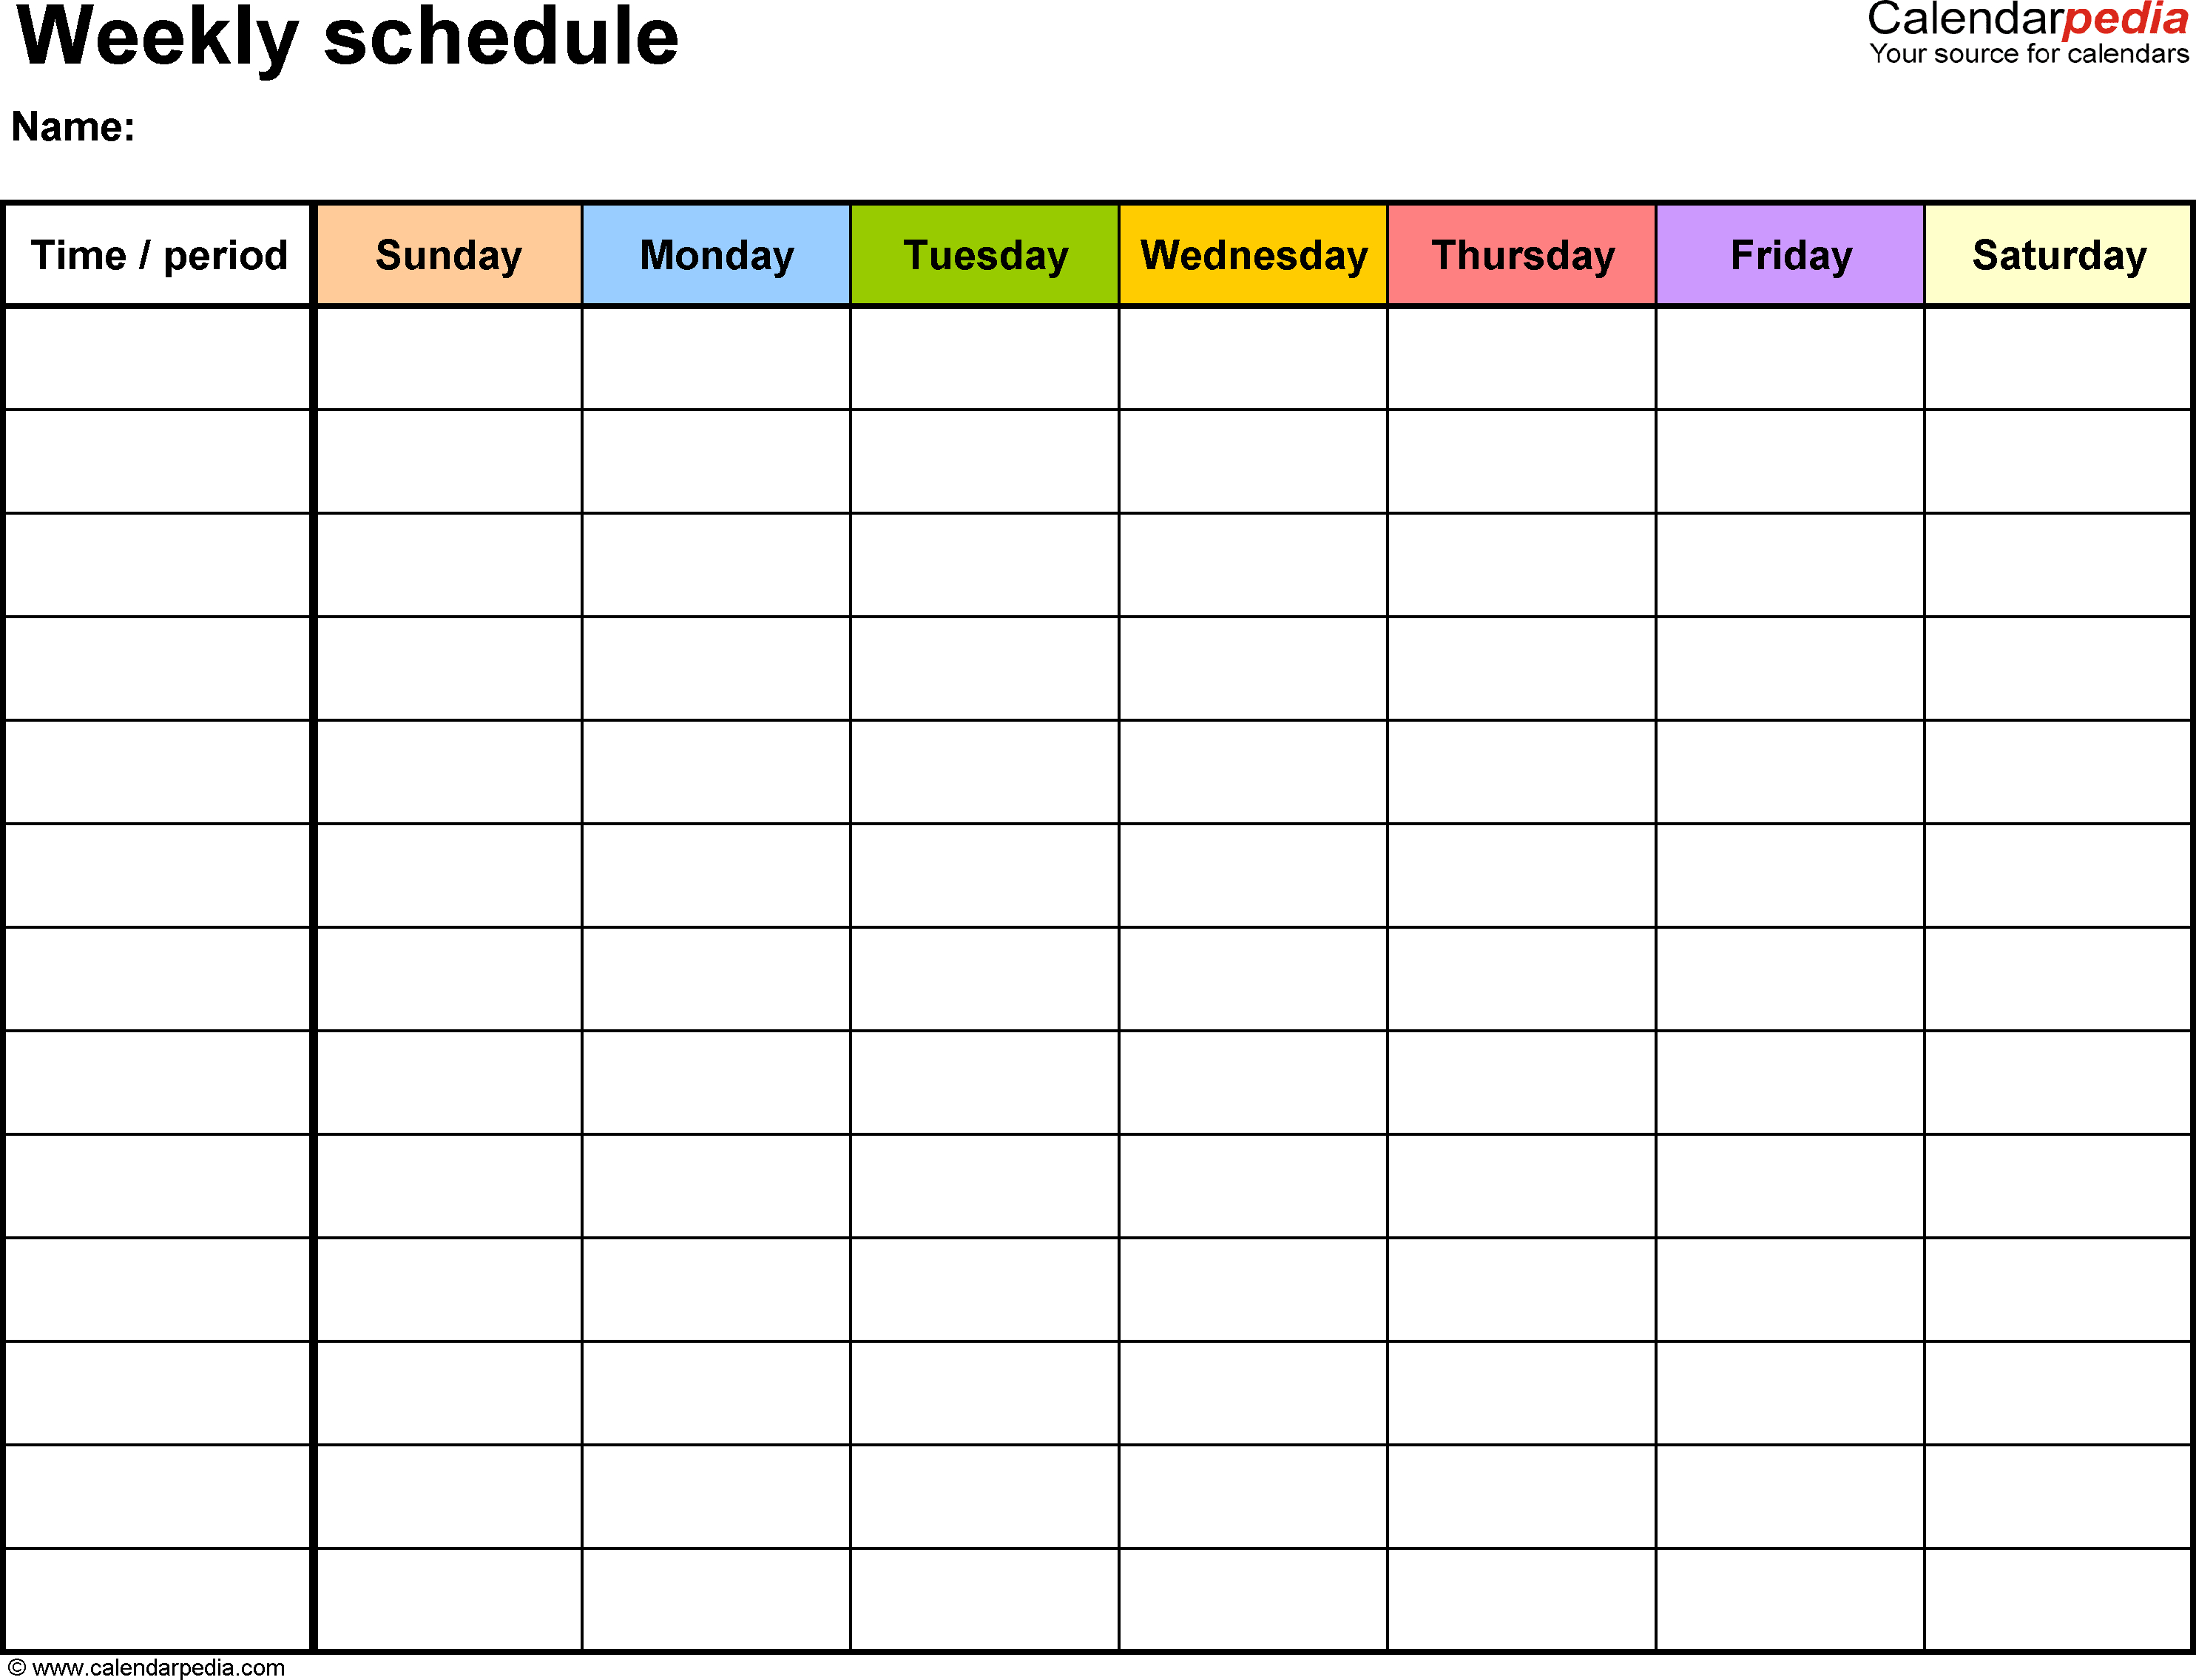 Free Weekly Schedule Templates For Excel - 18 Templates intended for One Week Calendar Template Printable